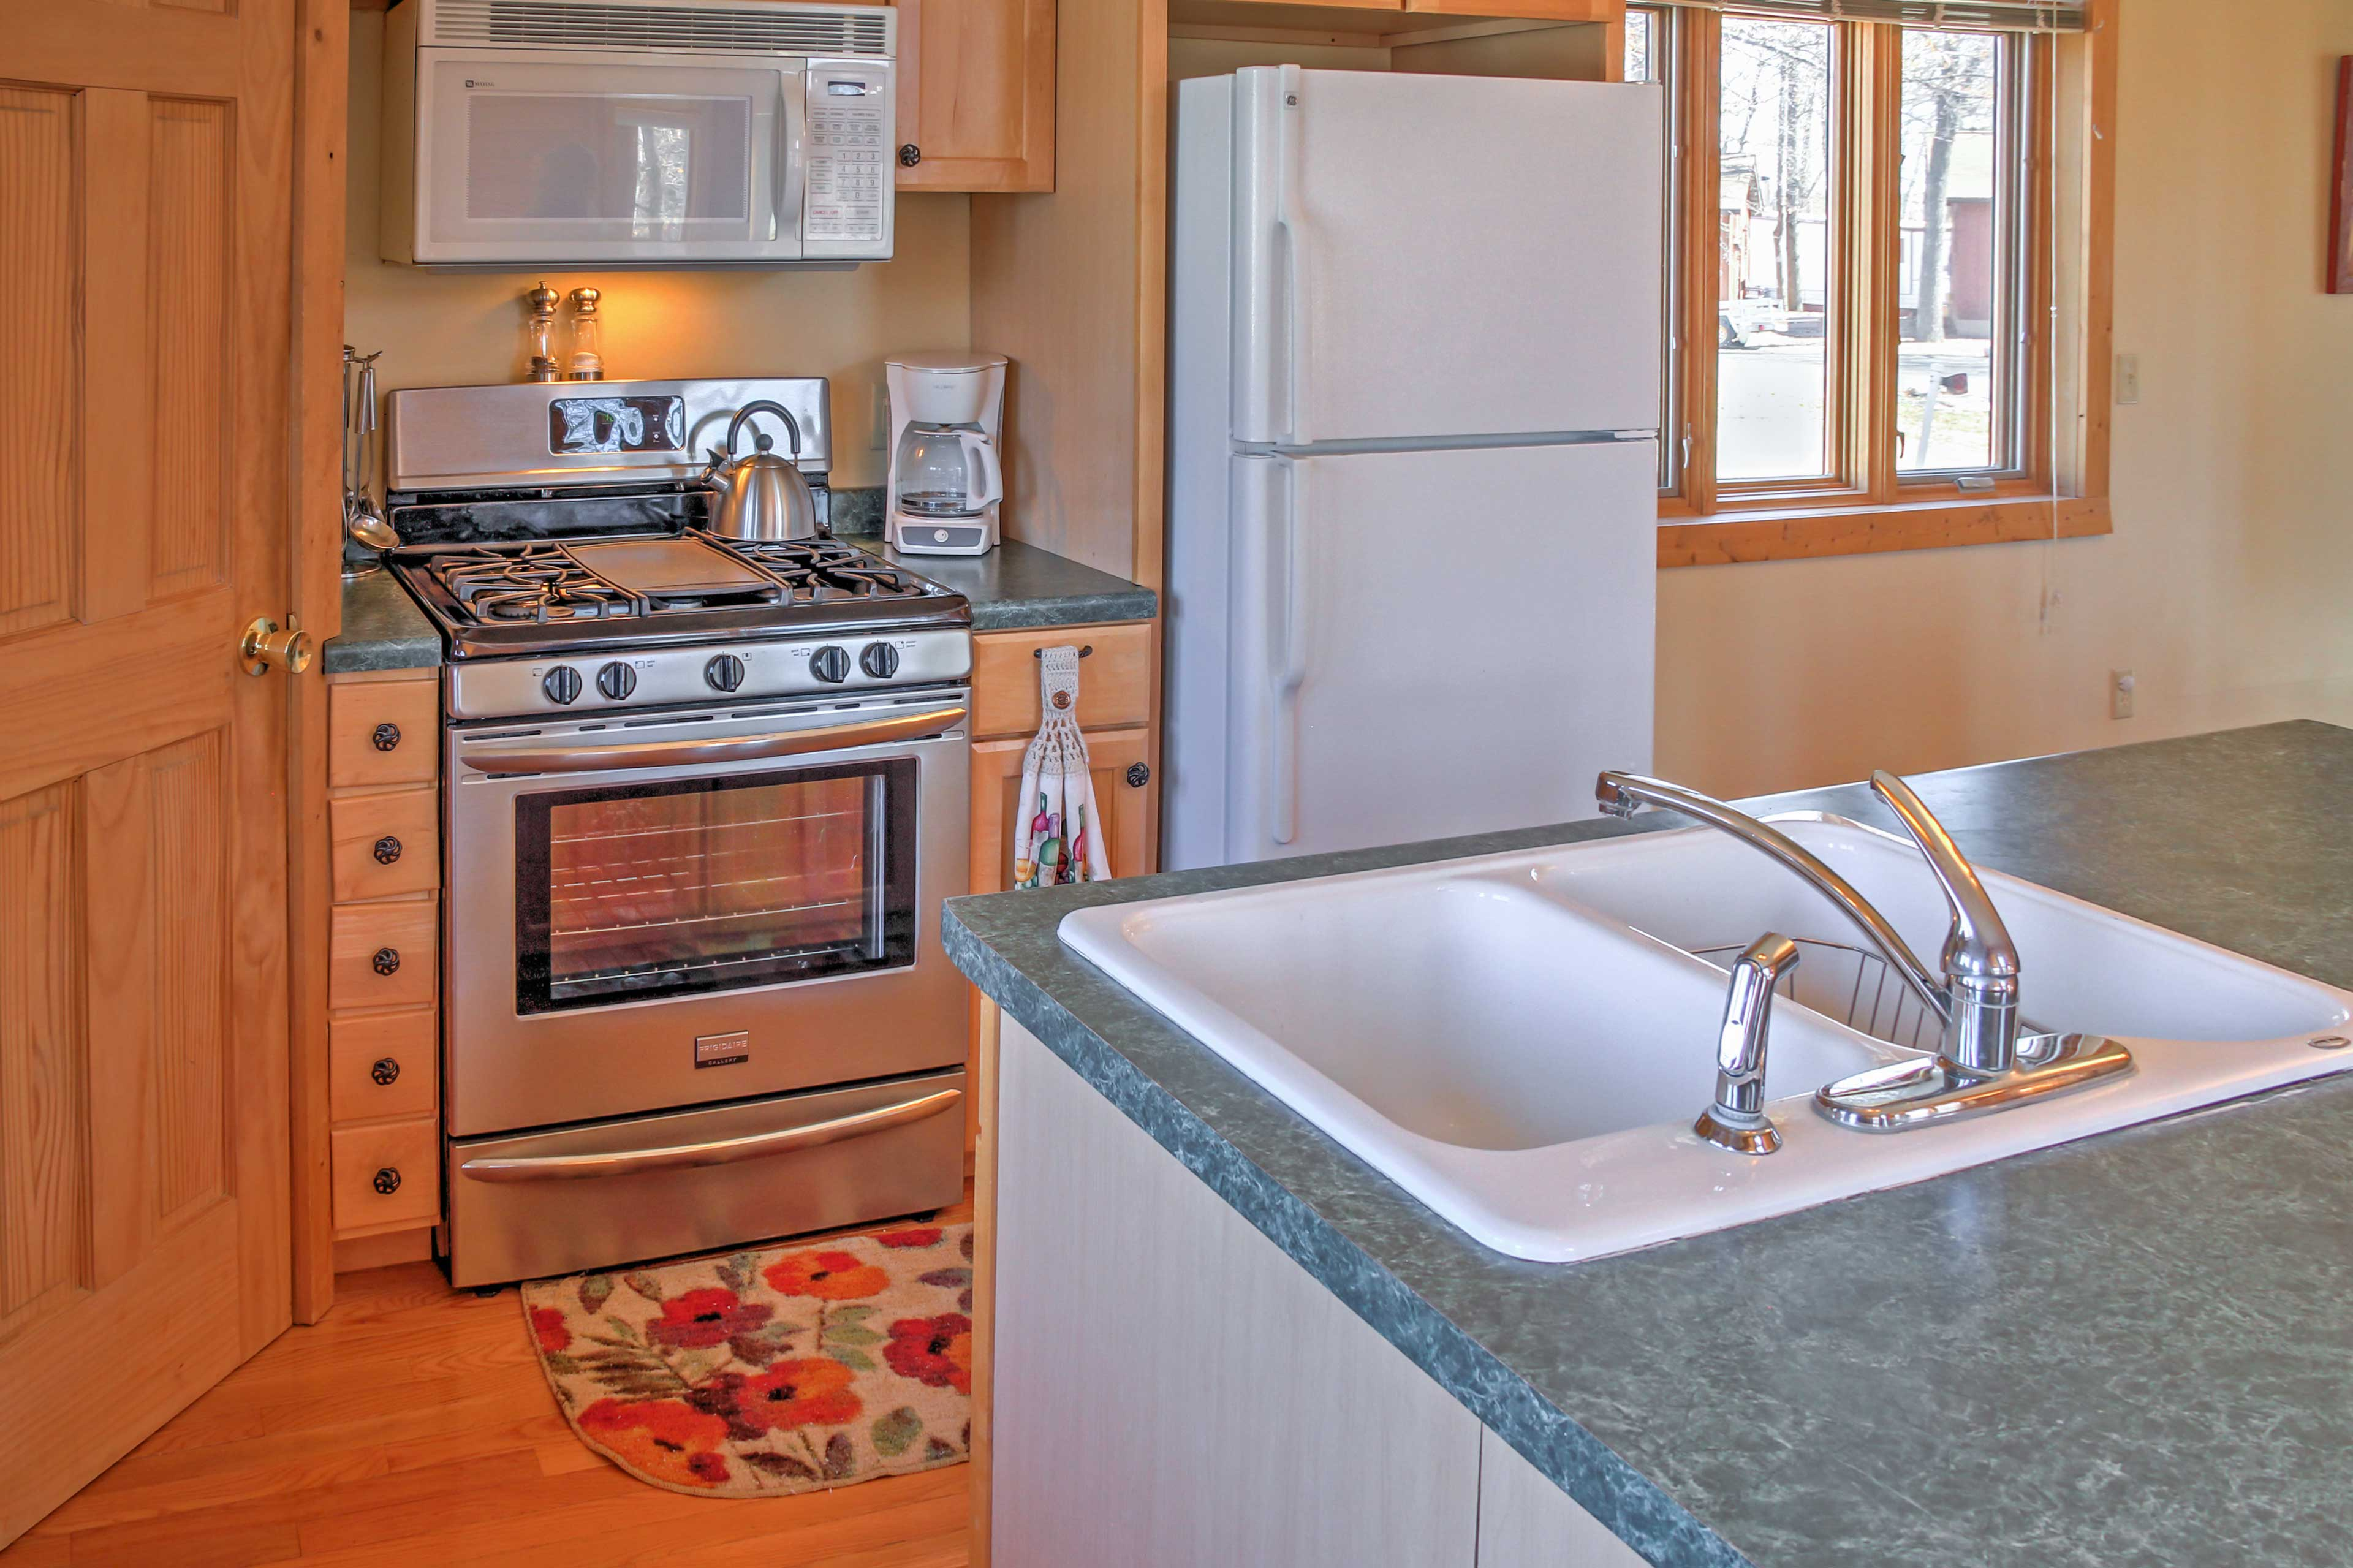 The kitchen is open to the dining and living area.